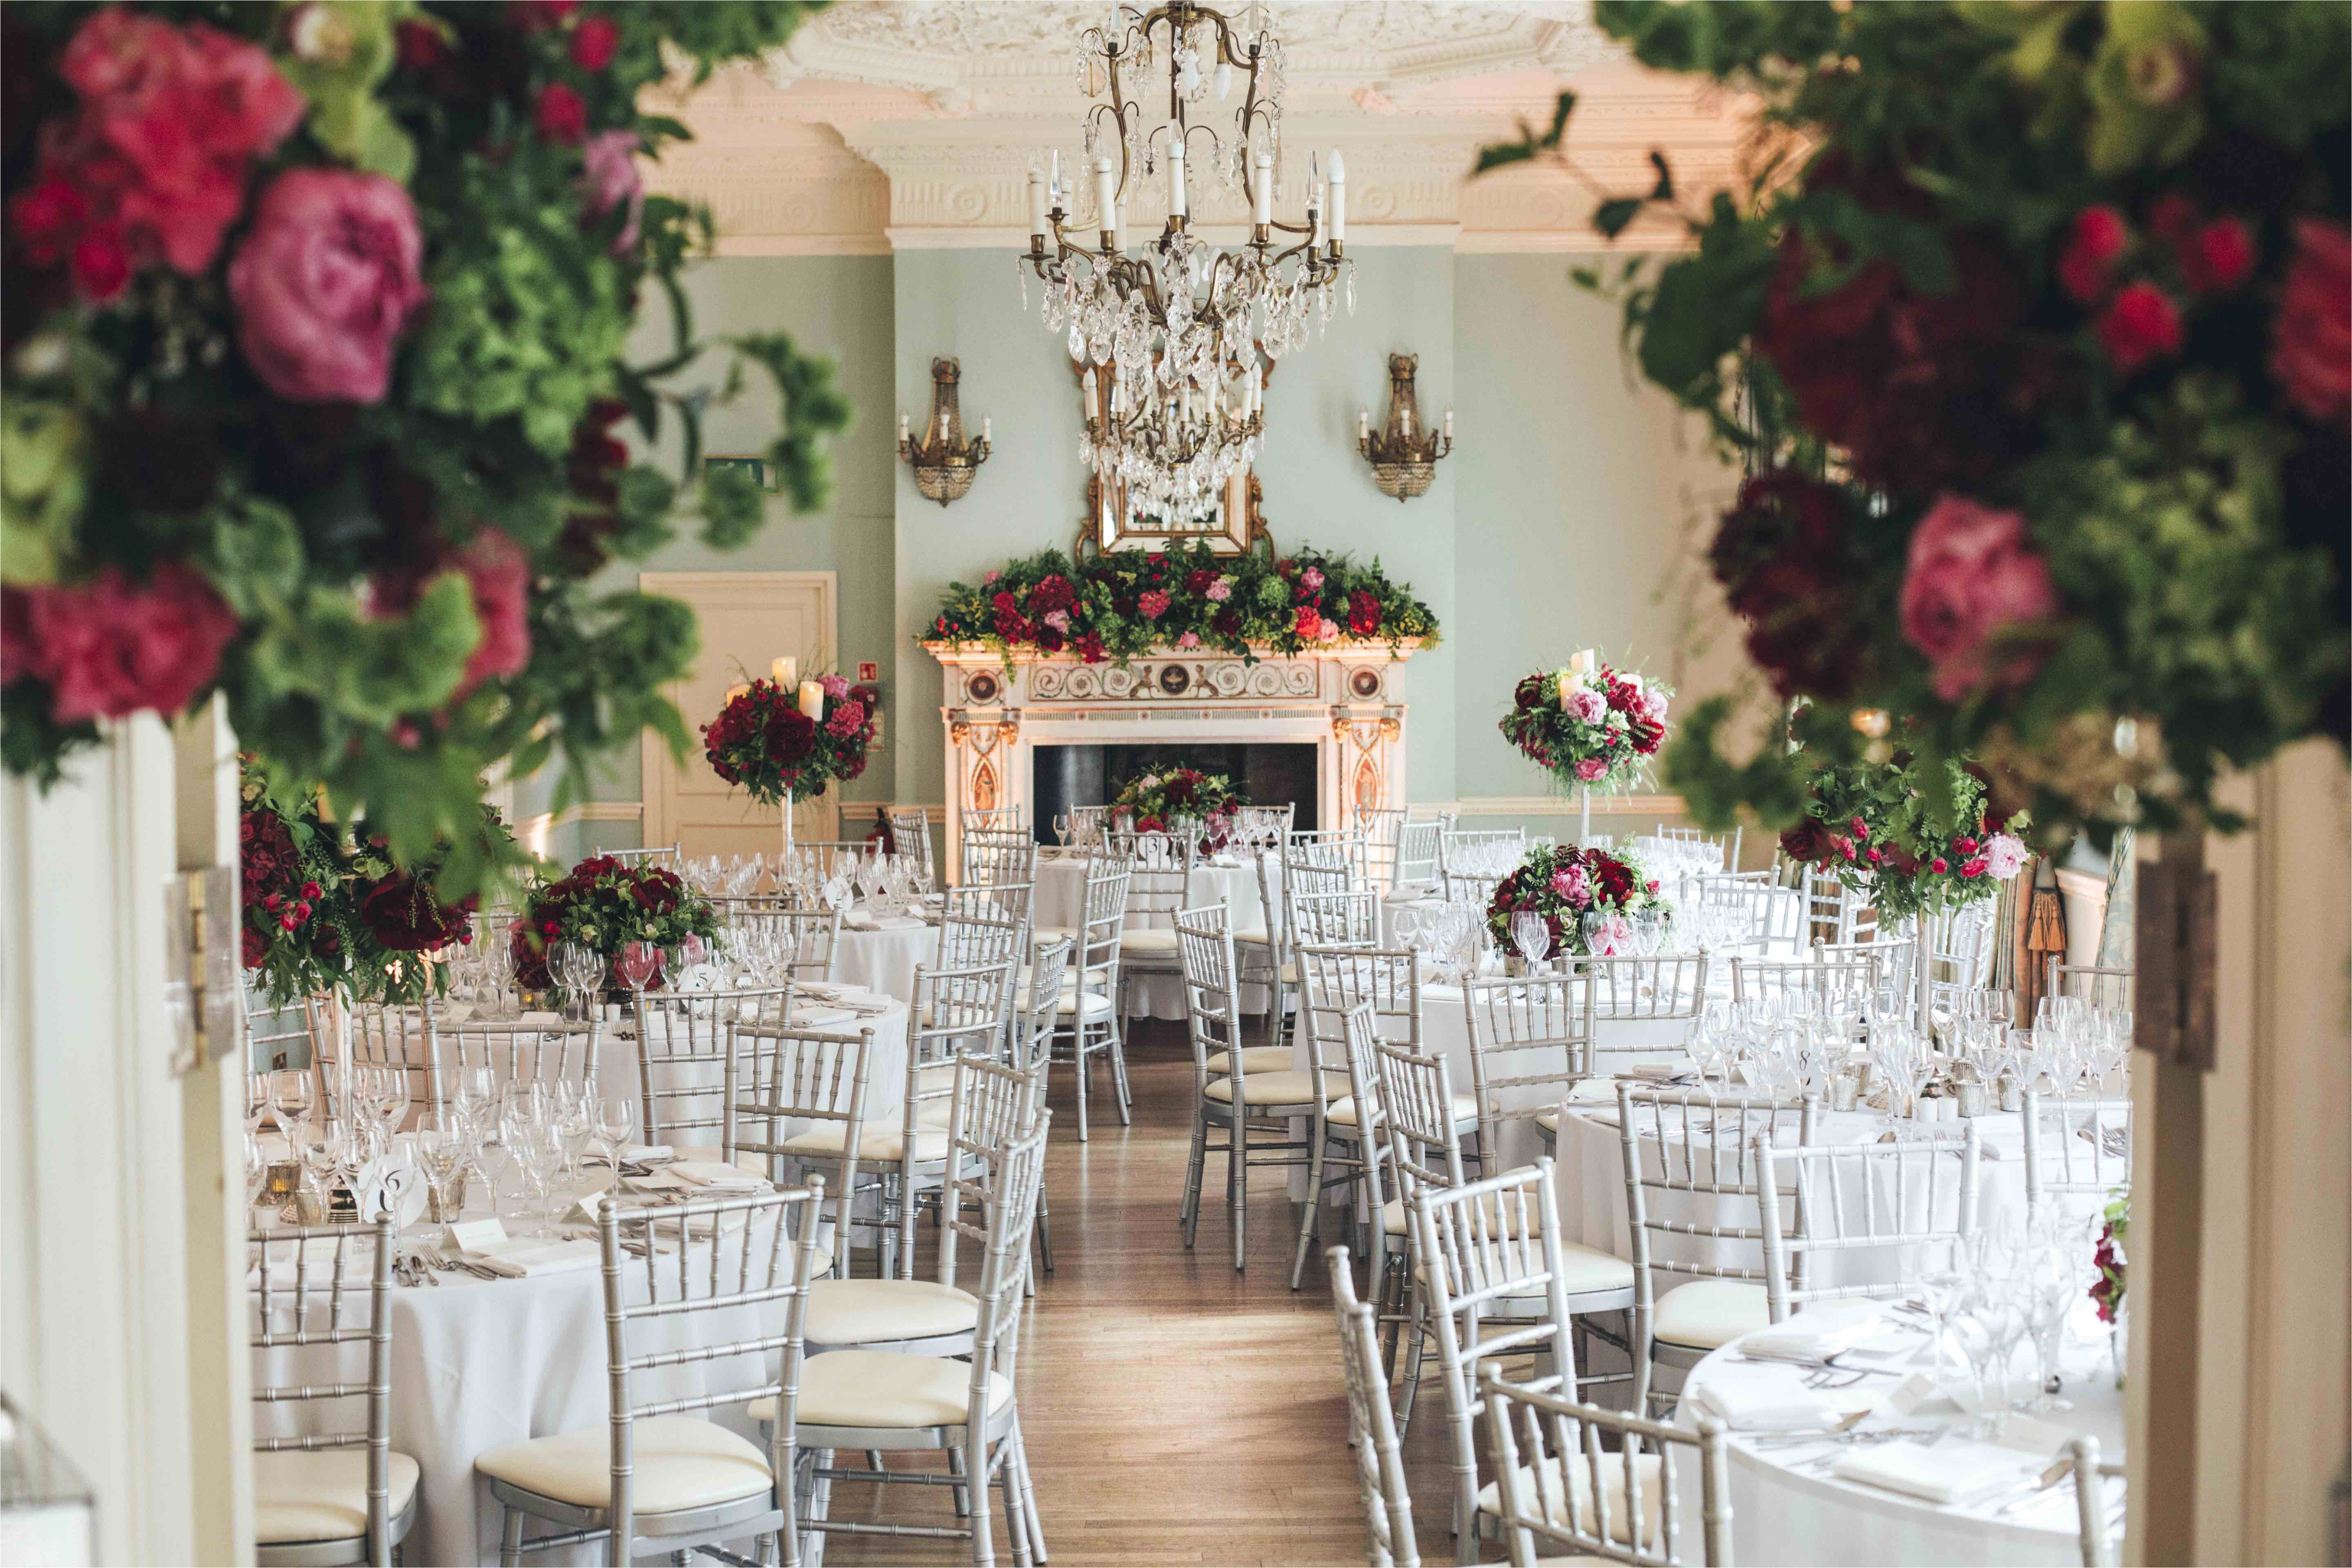 planning a small wedding at home inspirational planning a small wedding at home lovely 1010 best wedding planning